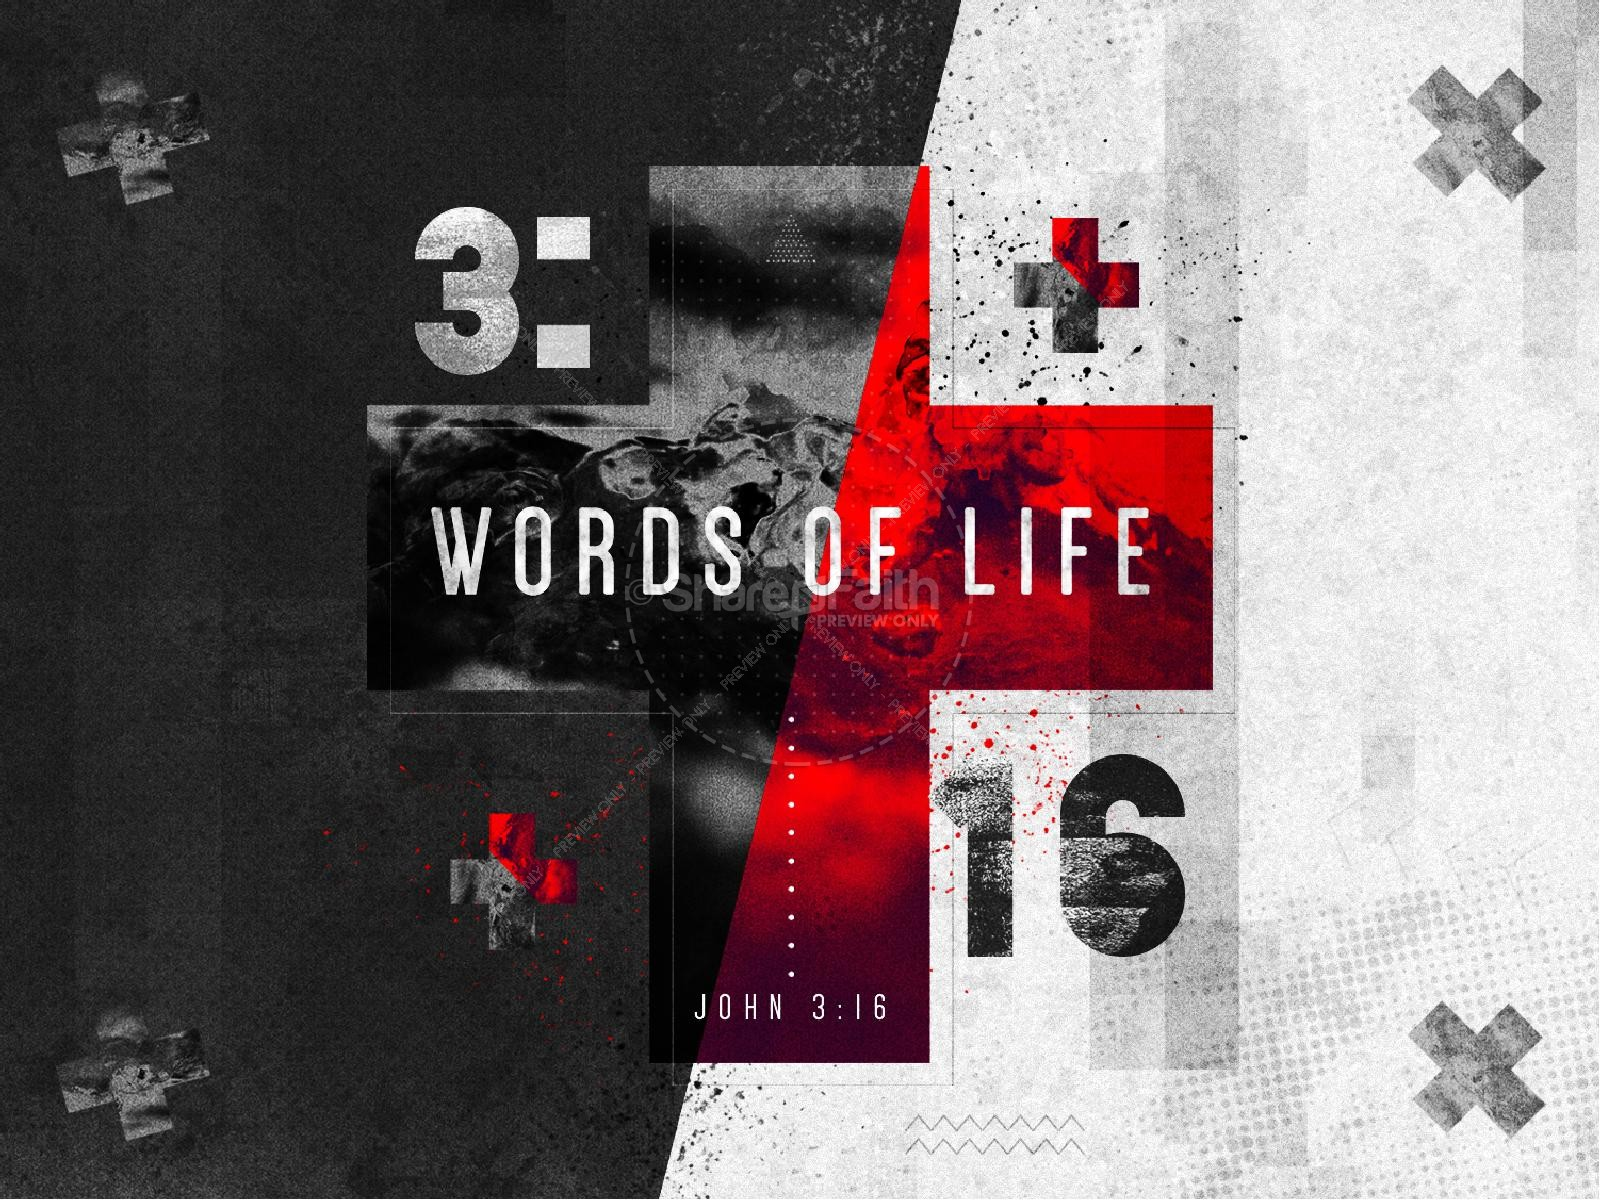 Words of Life John 3:16 Sermon PowerPoint